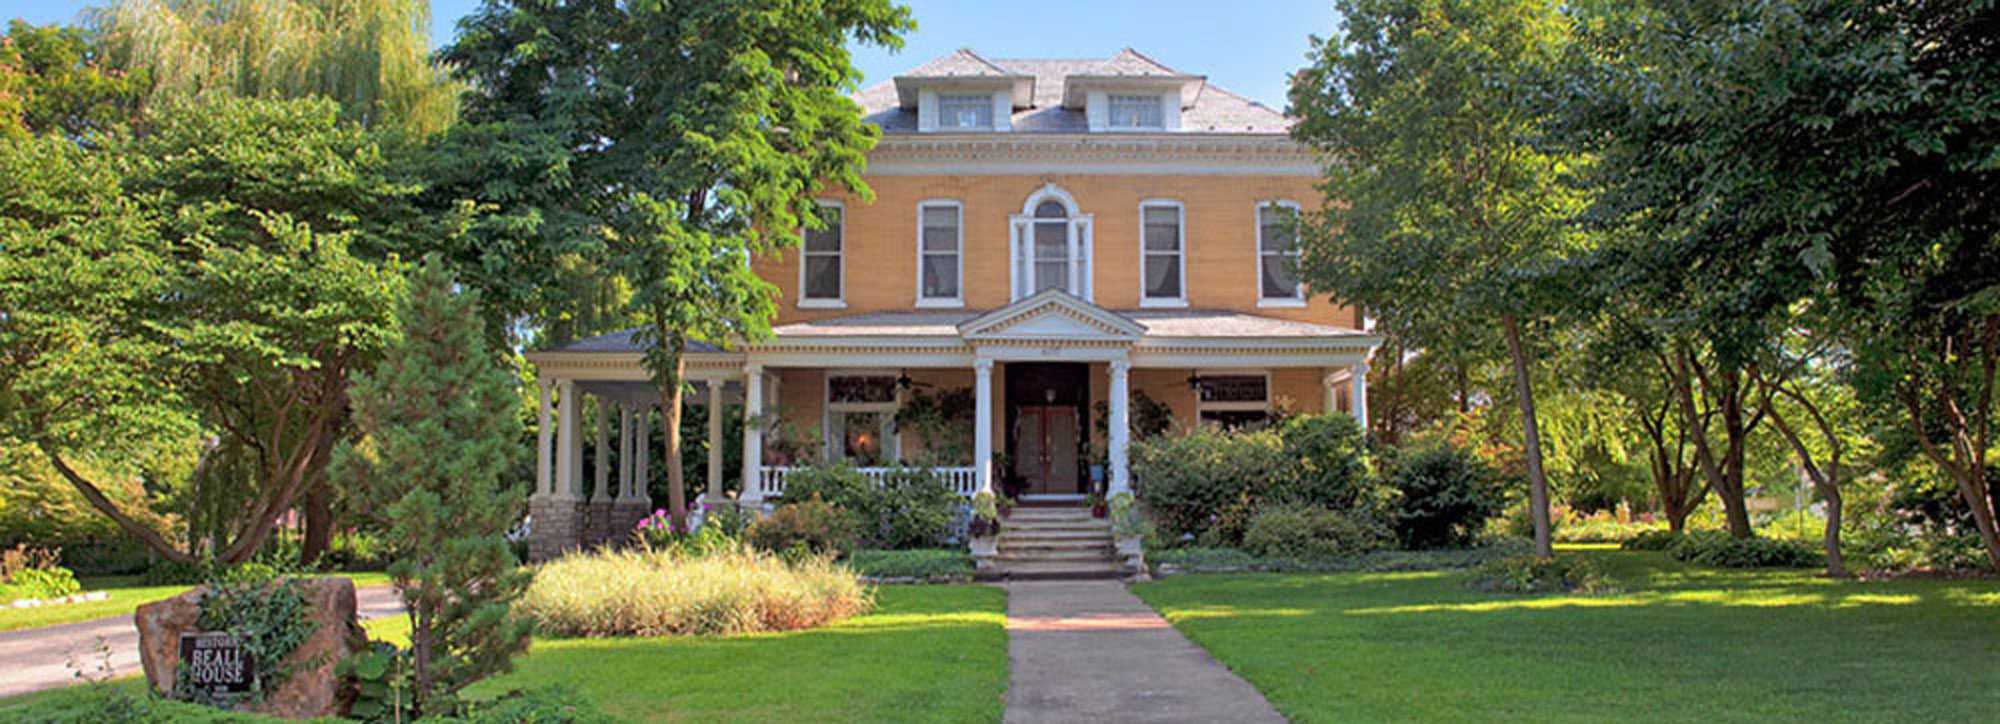 Beall Mansion Bed and Breakfast Inn St. Louis Area